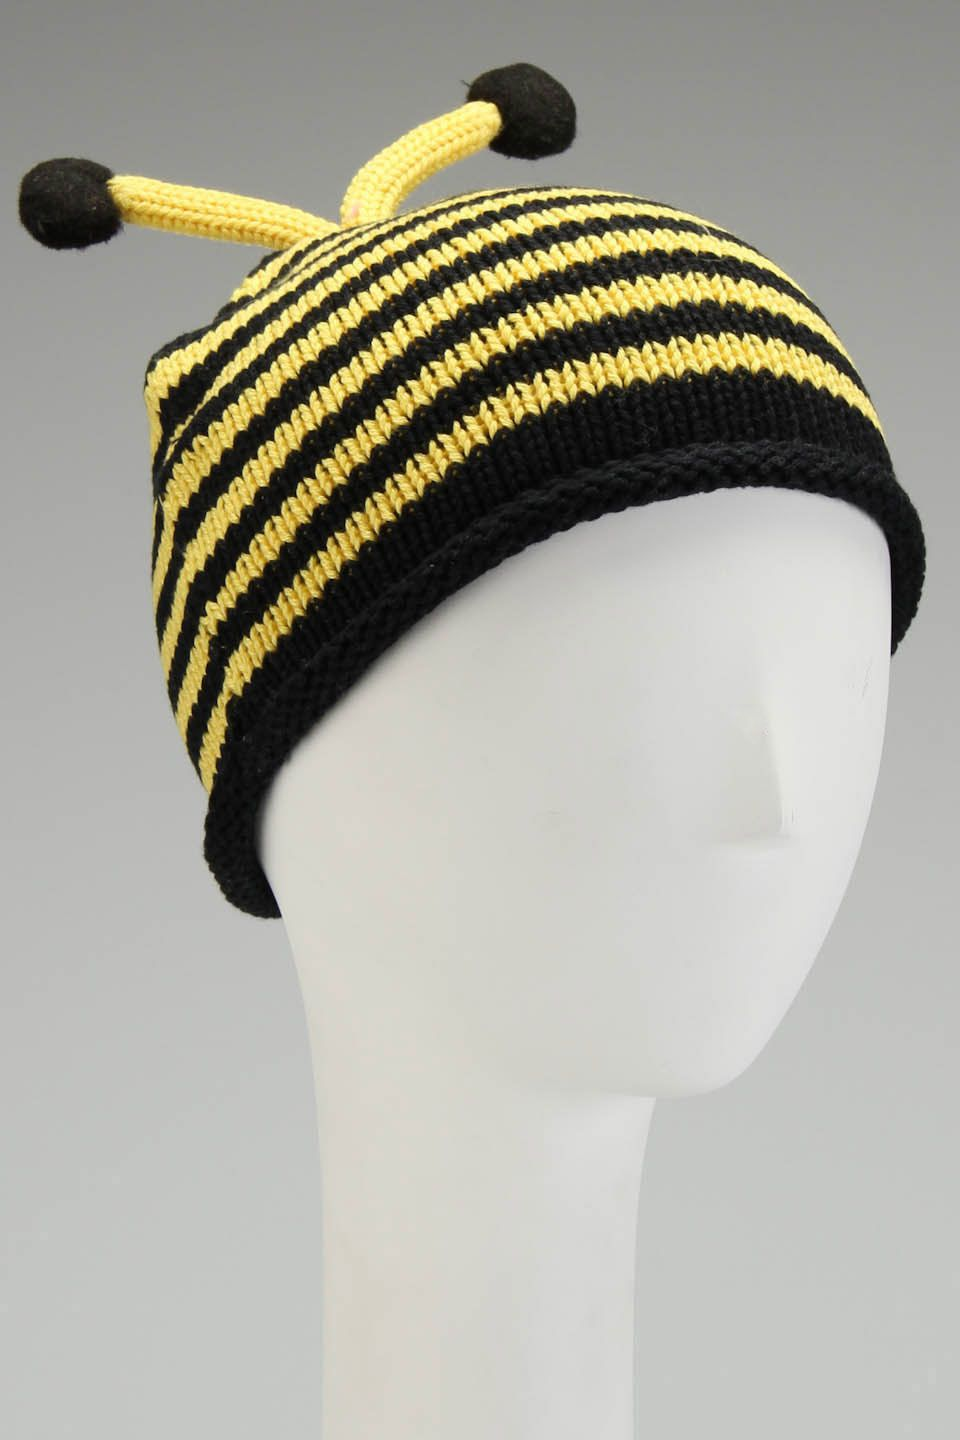 Nana Knits Bumble Bee Knit Hat @Remy Steiner Snezek | Knit and ...